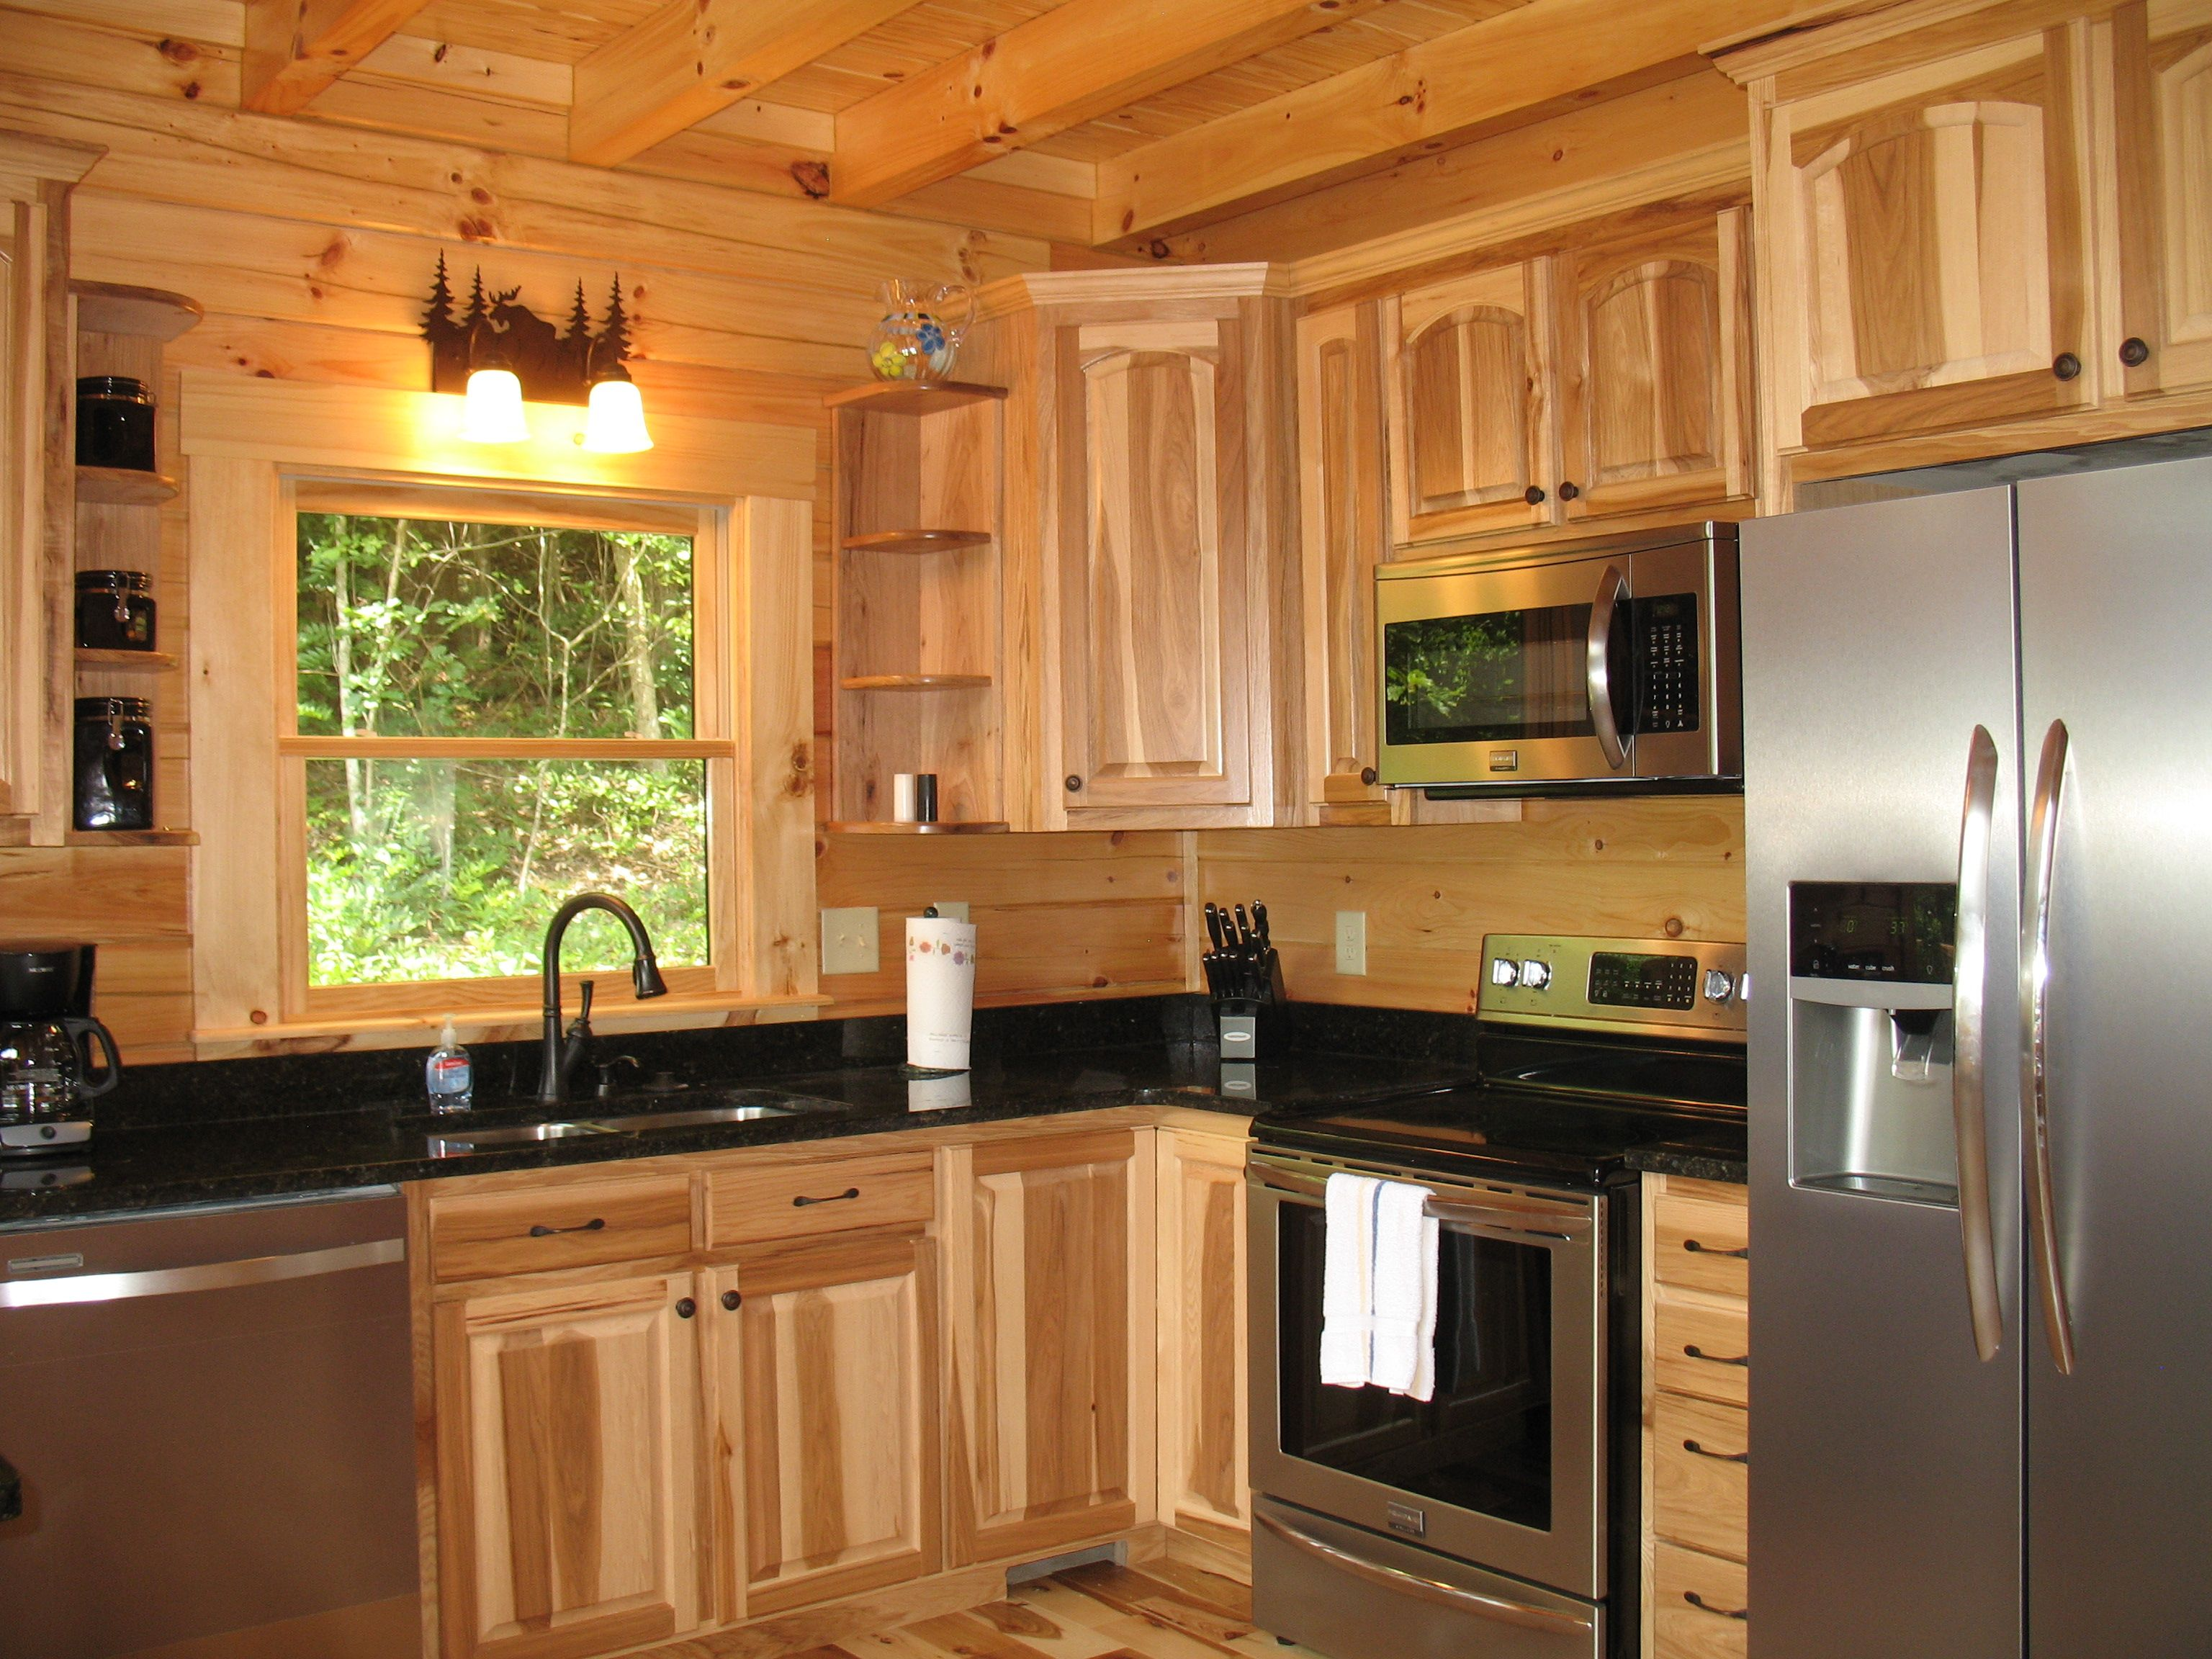 Denver Hickory Kitchen Cabinets Hickory Cabinets With Granite Countertops Hickory